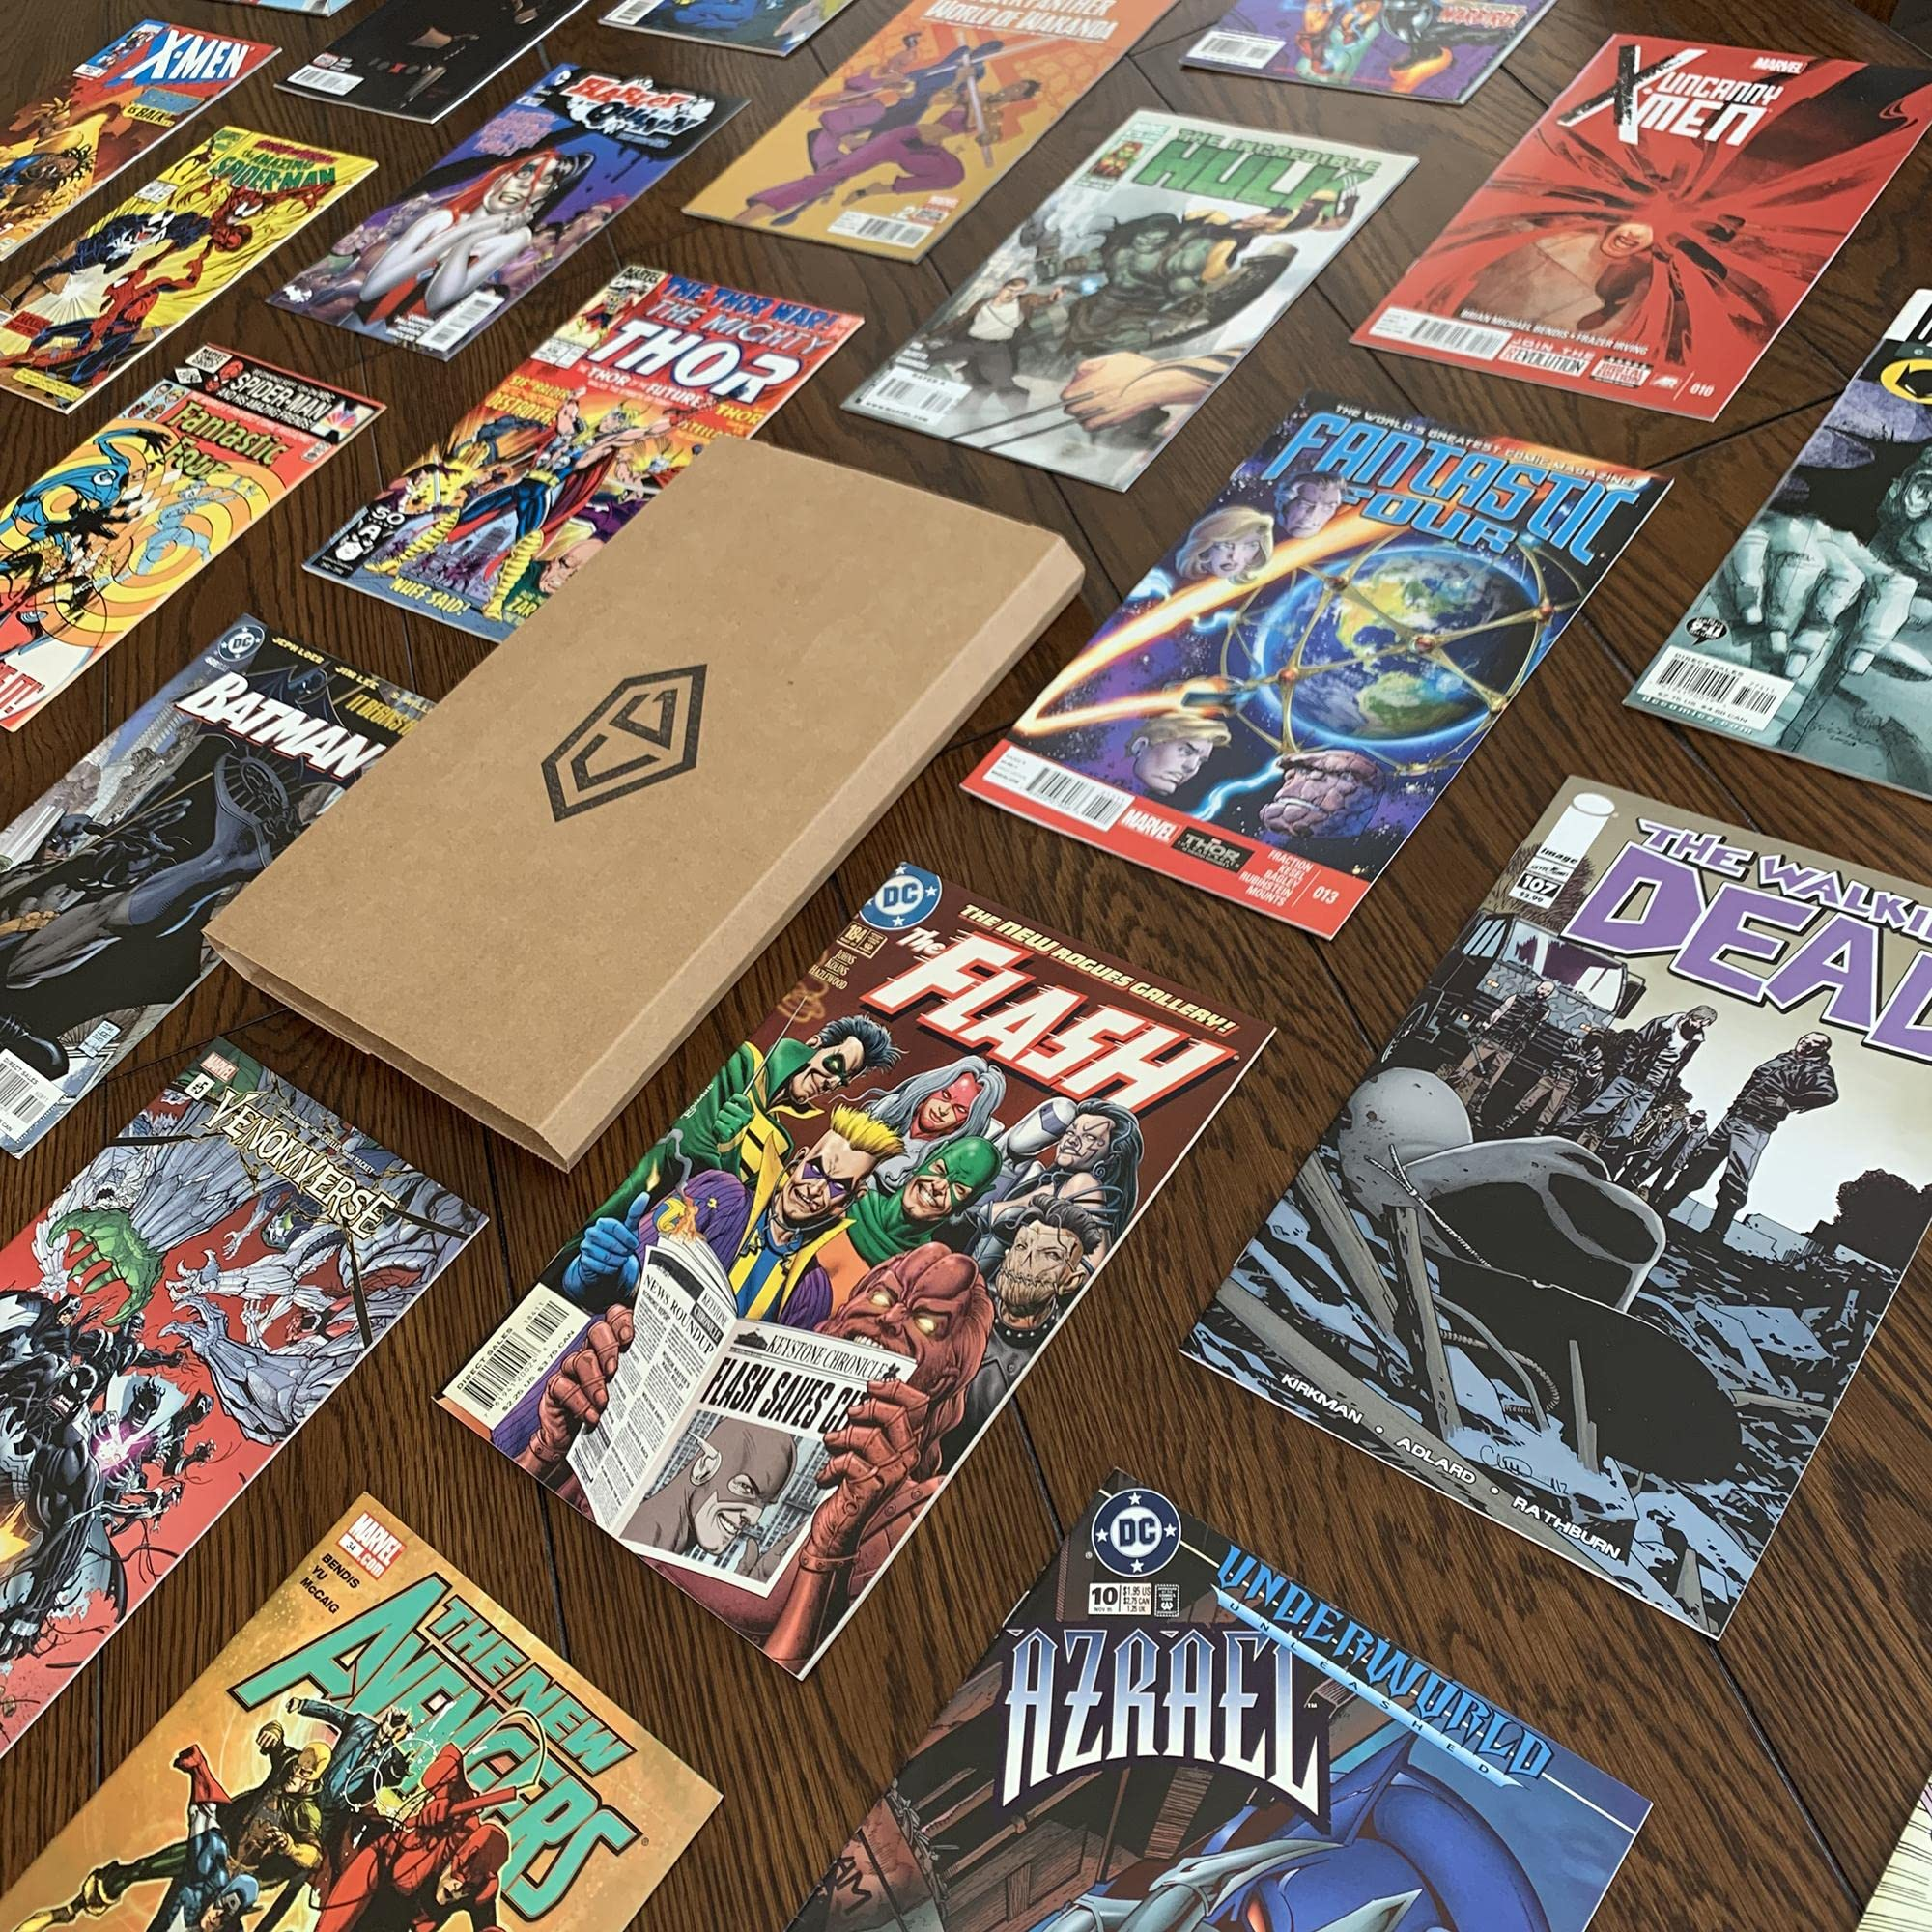 Amazon.com: The Comic Garage Super Box - Start a Collection or Expand on an  Existing One - 10 Collectible Comic Book Subscription Box: Memberships and  Subscriptions